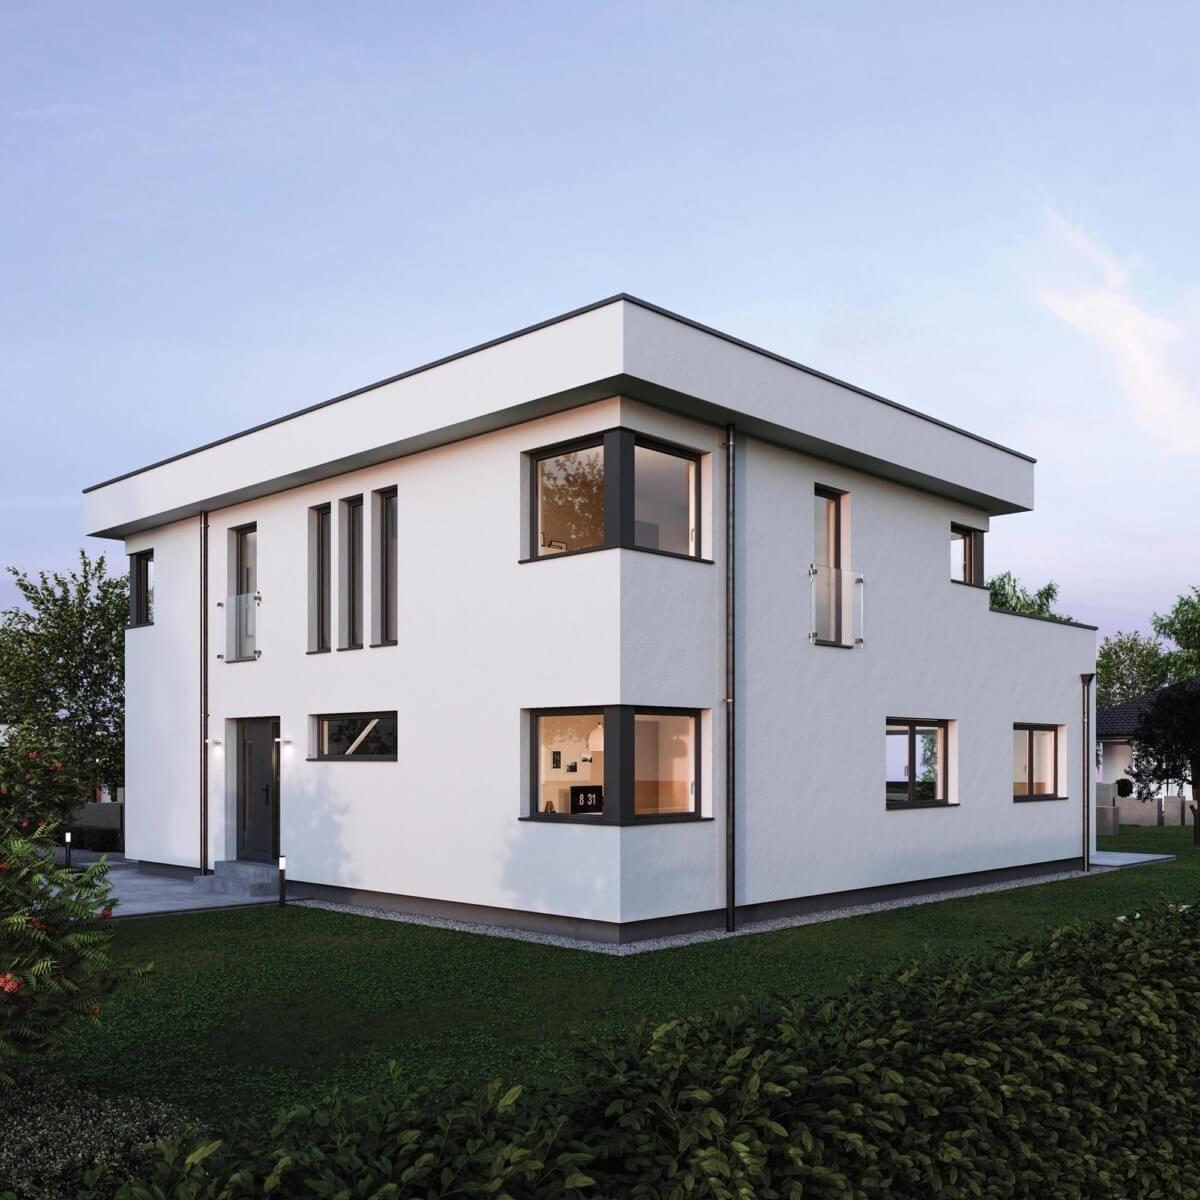 House Design With Flat Roof In Bauhaus Style Home Plans Two Story House Design House Architecture Design Flat Roof Design